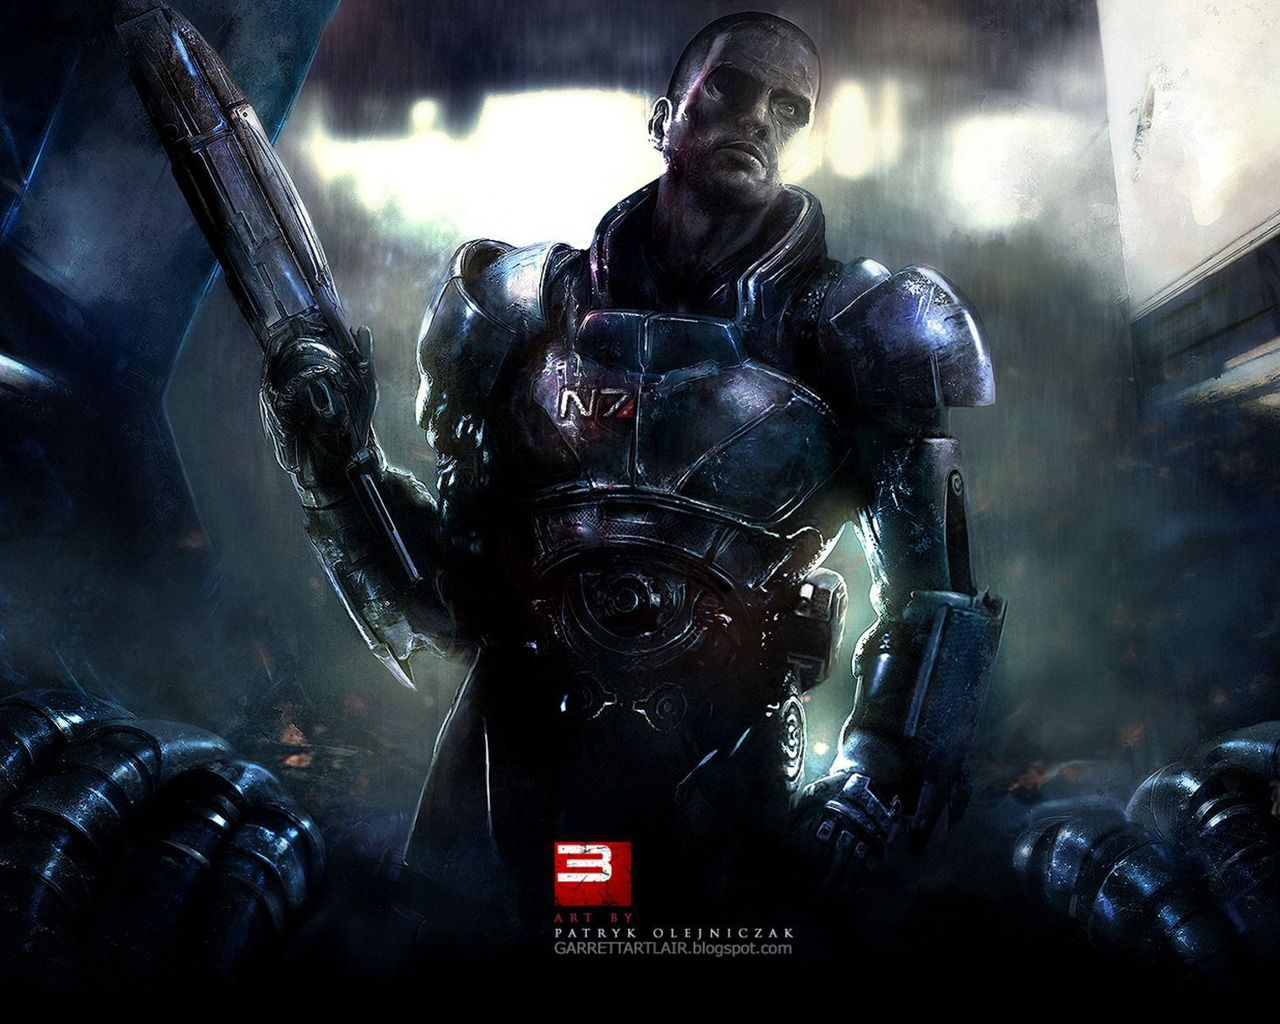 mass effect 3 game download free